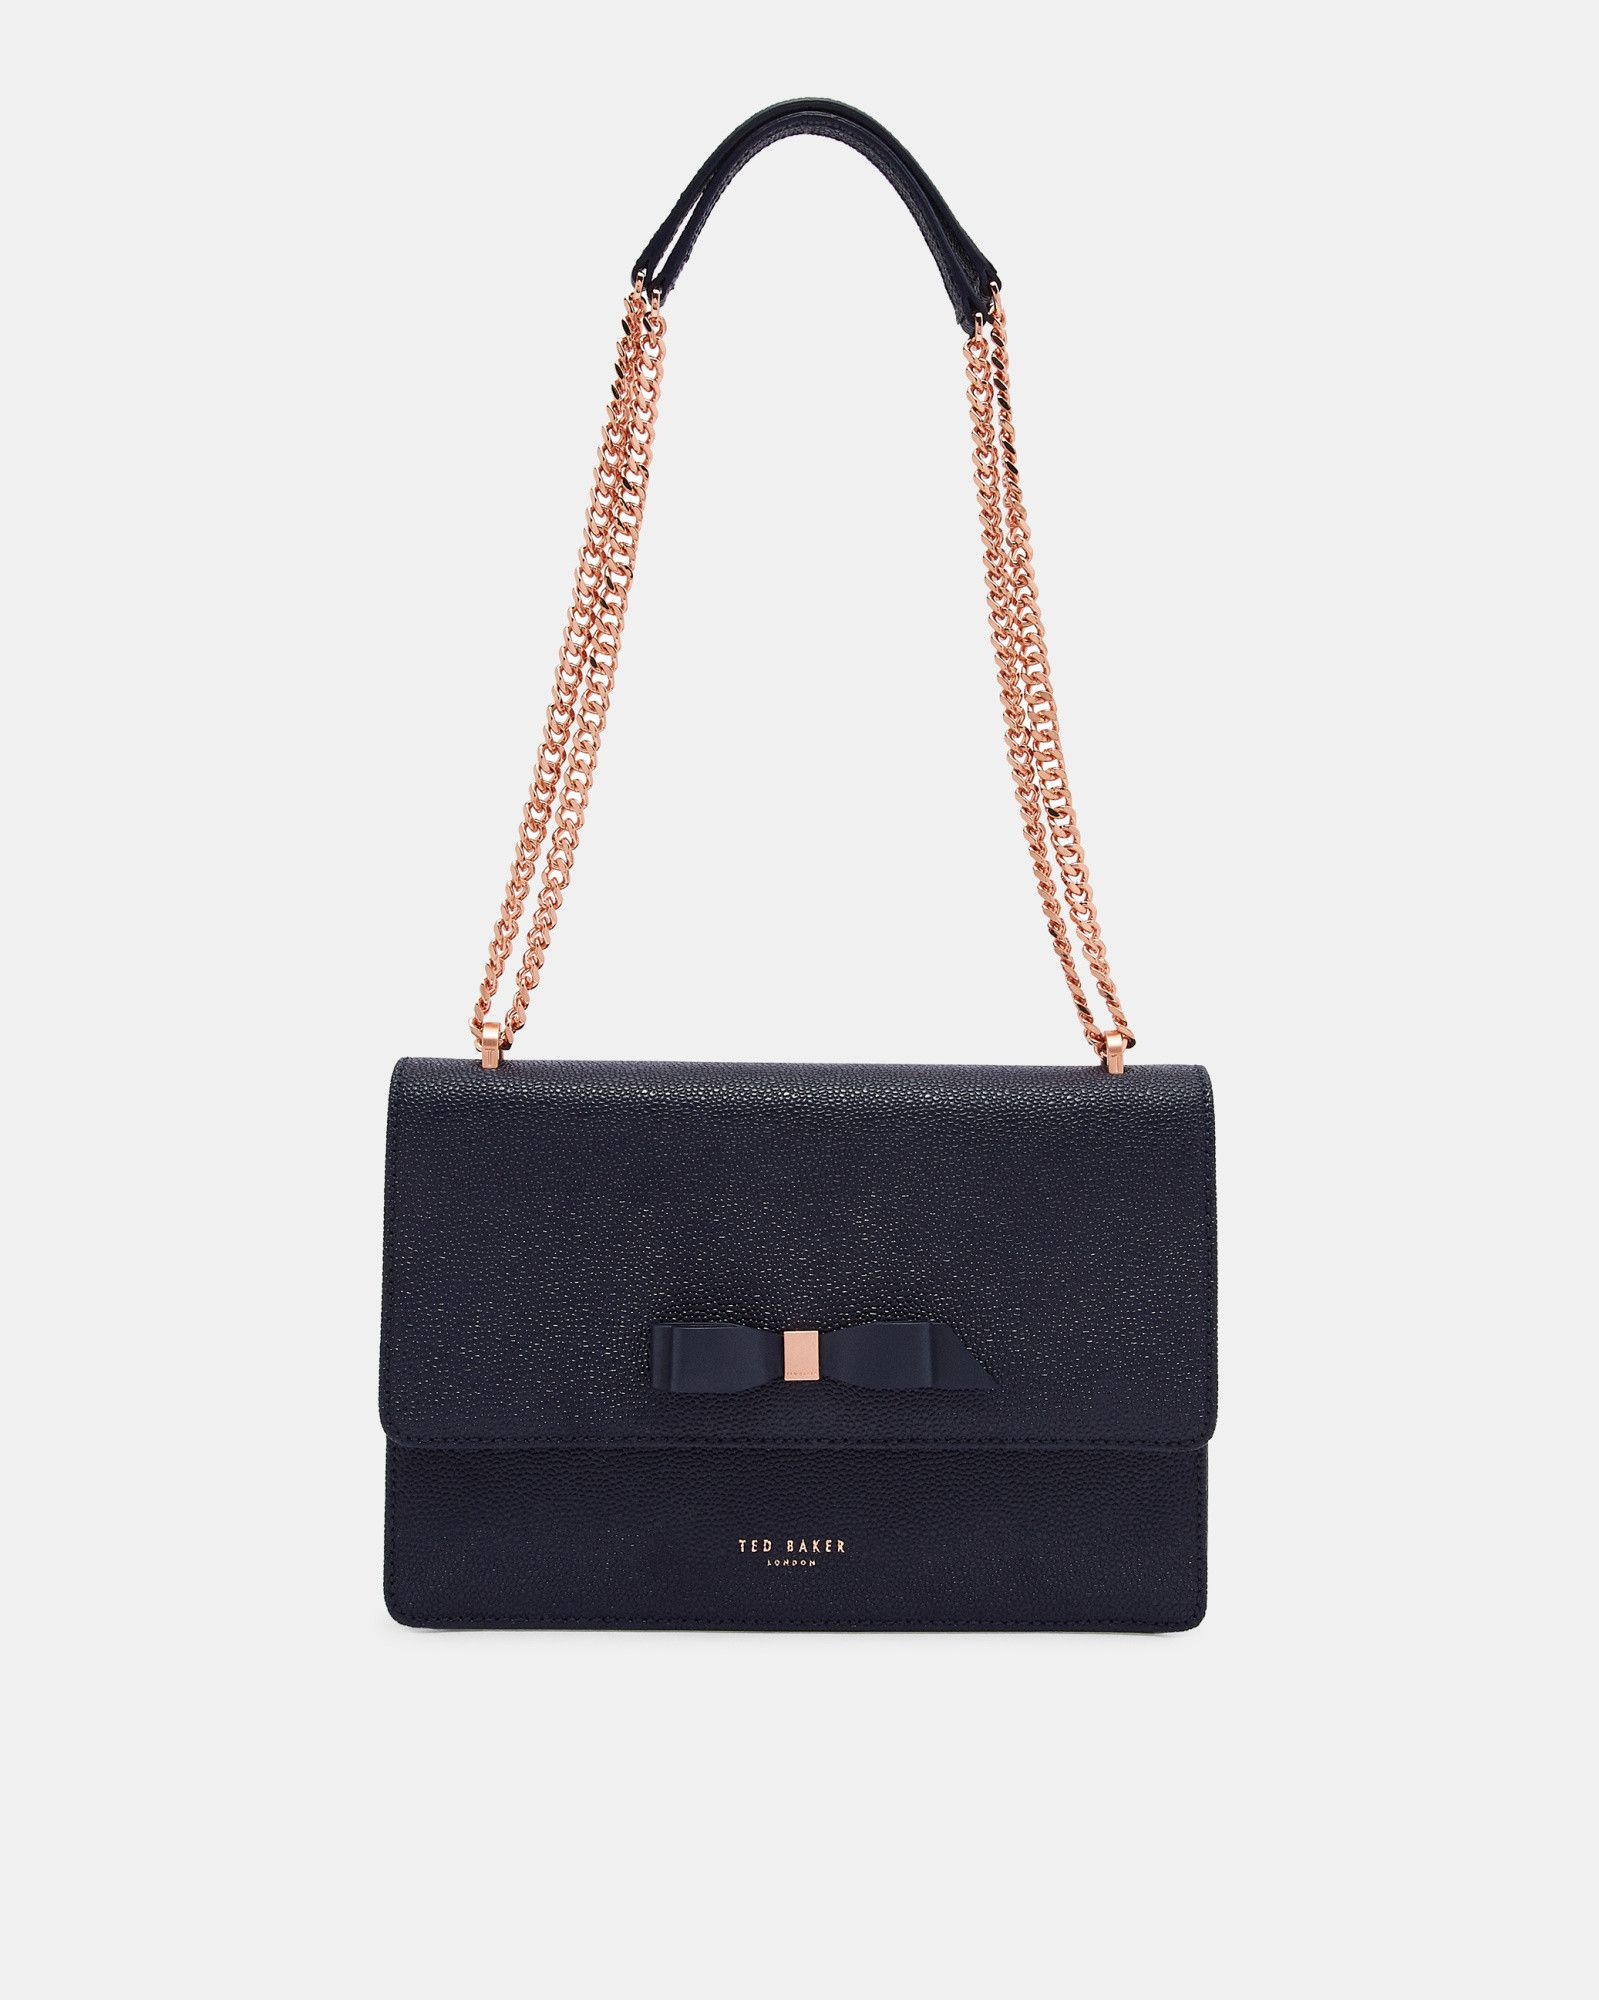 59353892f5 Bow Detail Leather Cross Body Bag Leather Crossbody Bag, Black Bags, Ted  Baker,